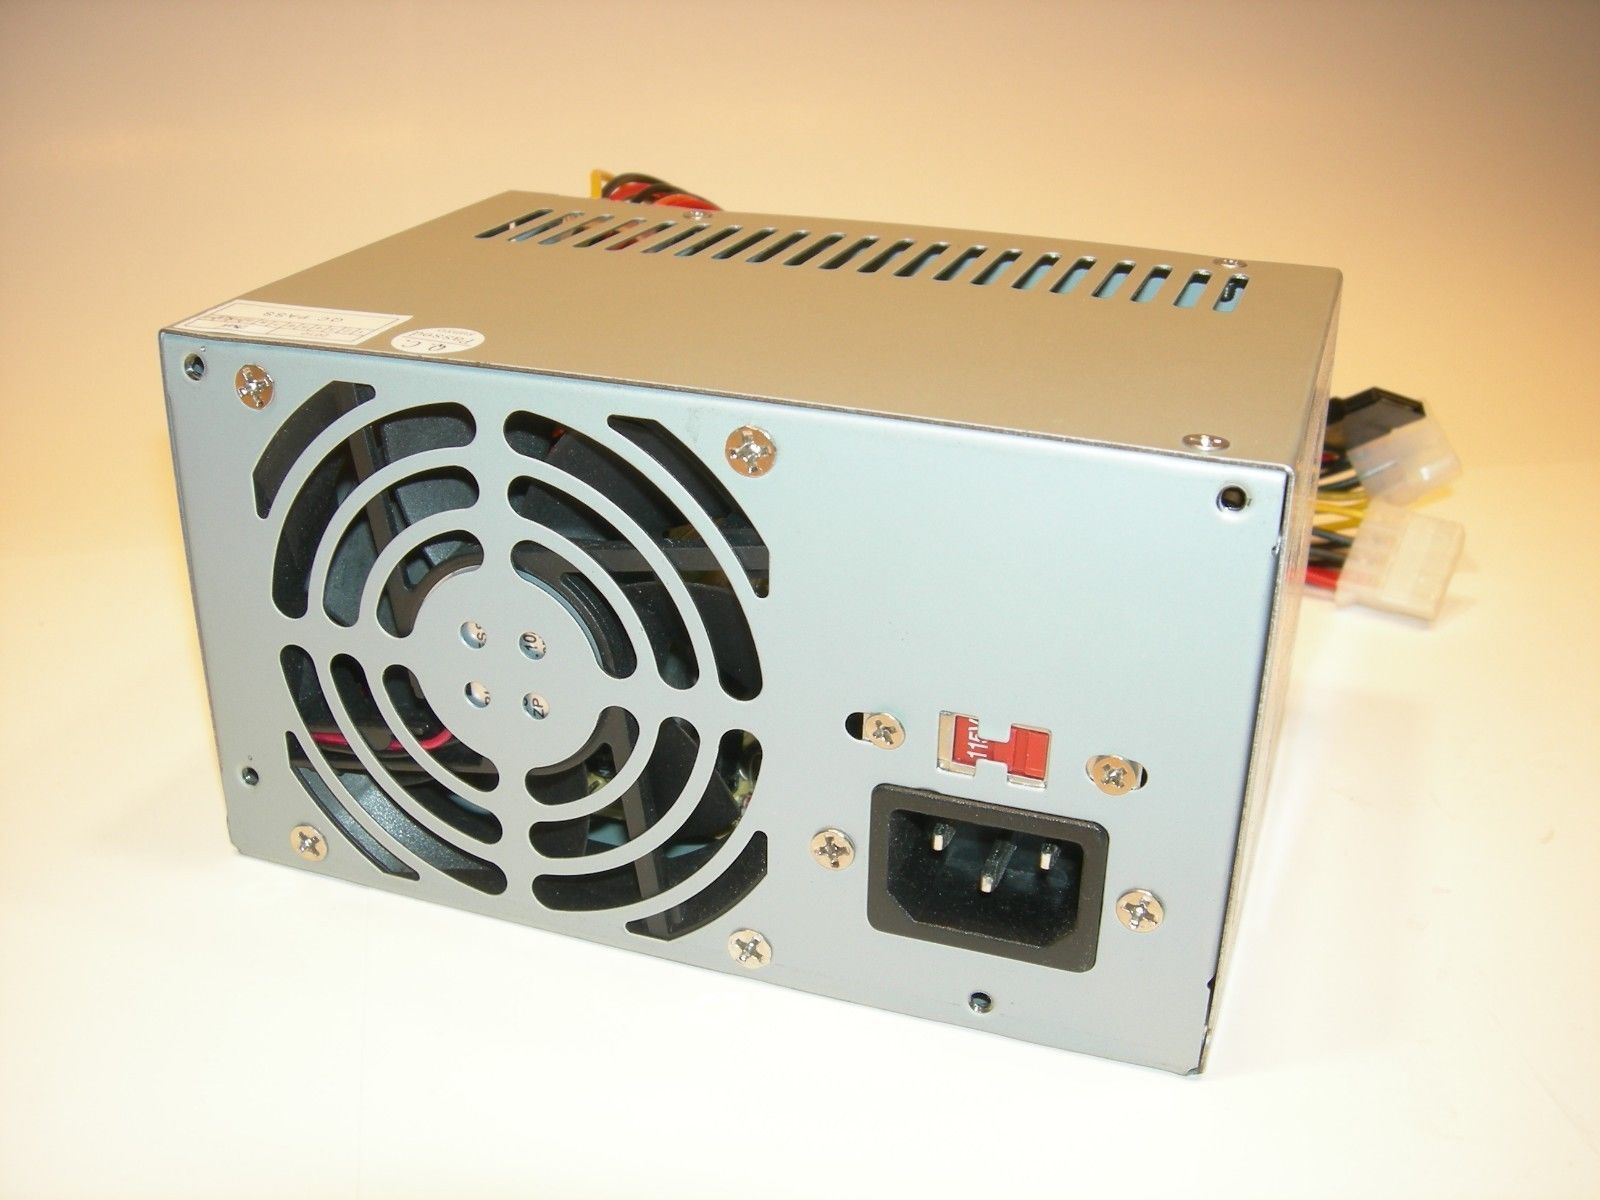 New PC Power Supply Upgrade for Dell and 26 similar items